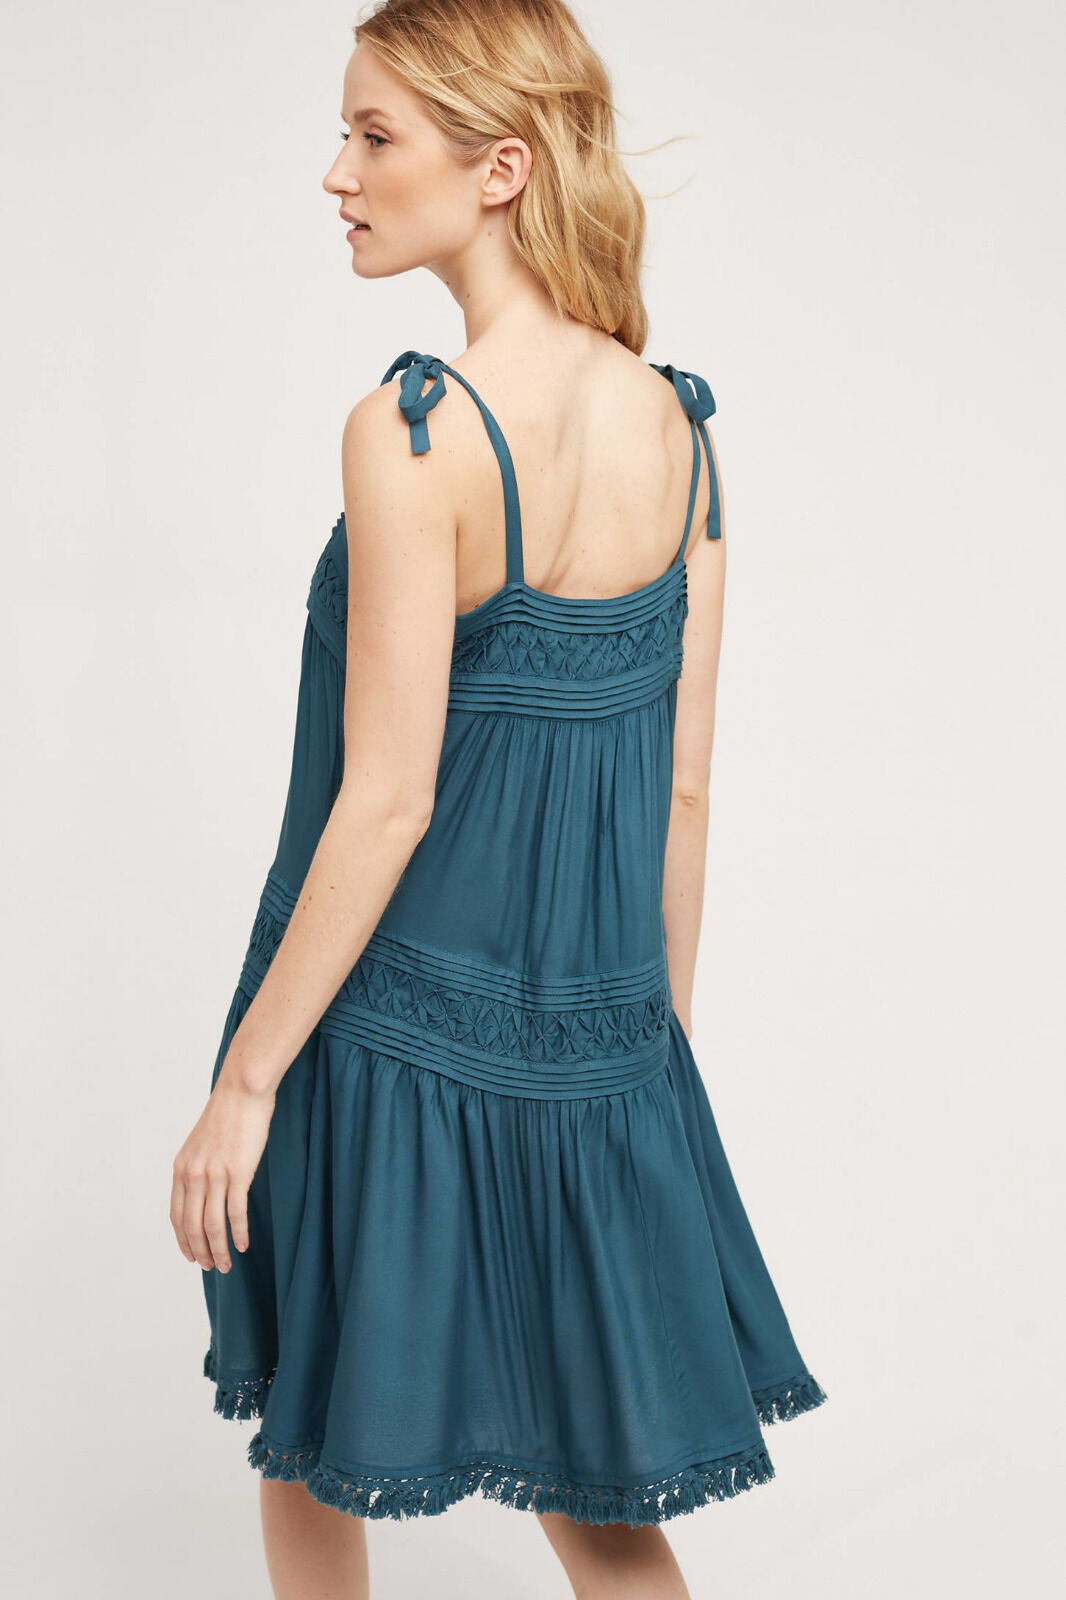 NWT Anthropologie Anthropologie Anthropologie Senna Dress, by Floreat - bluee, size M 29ee53